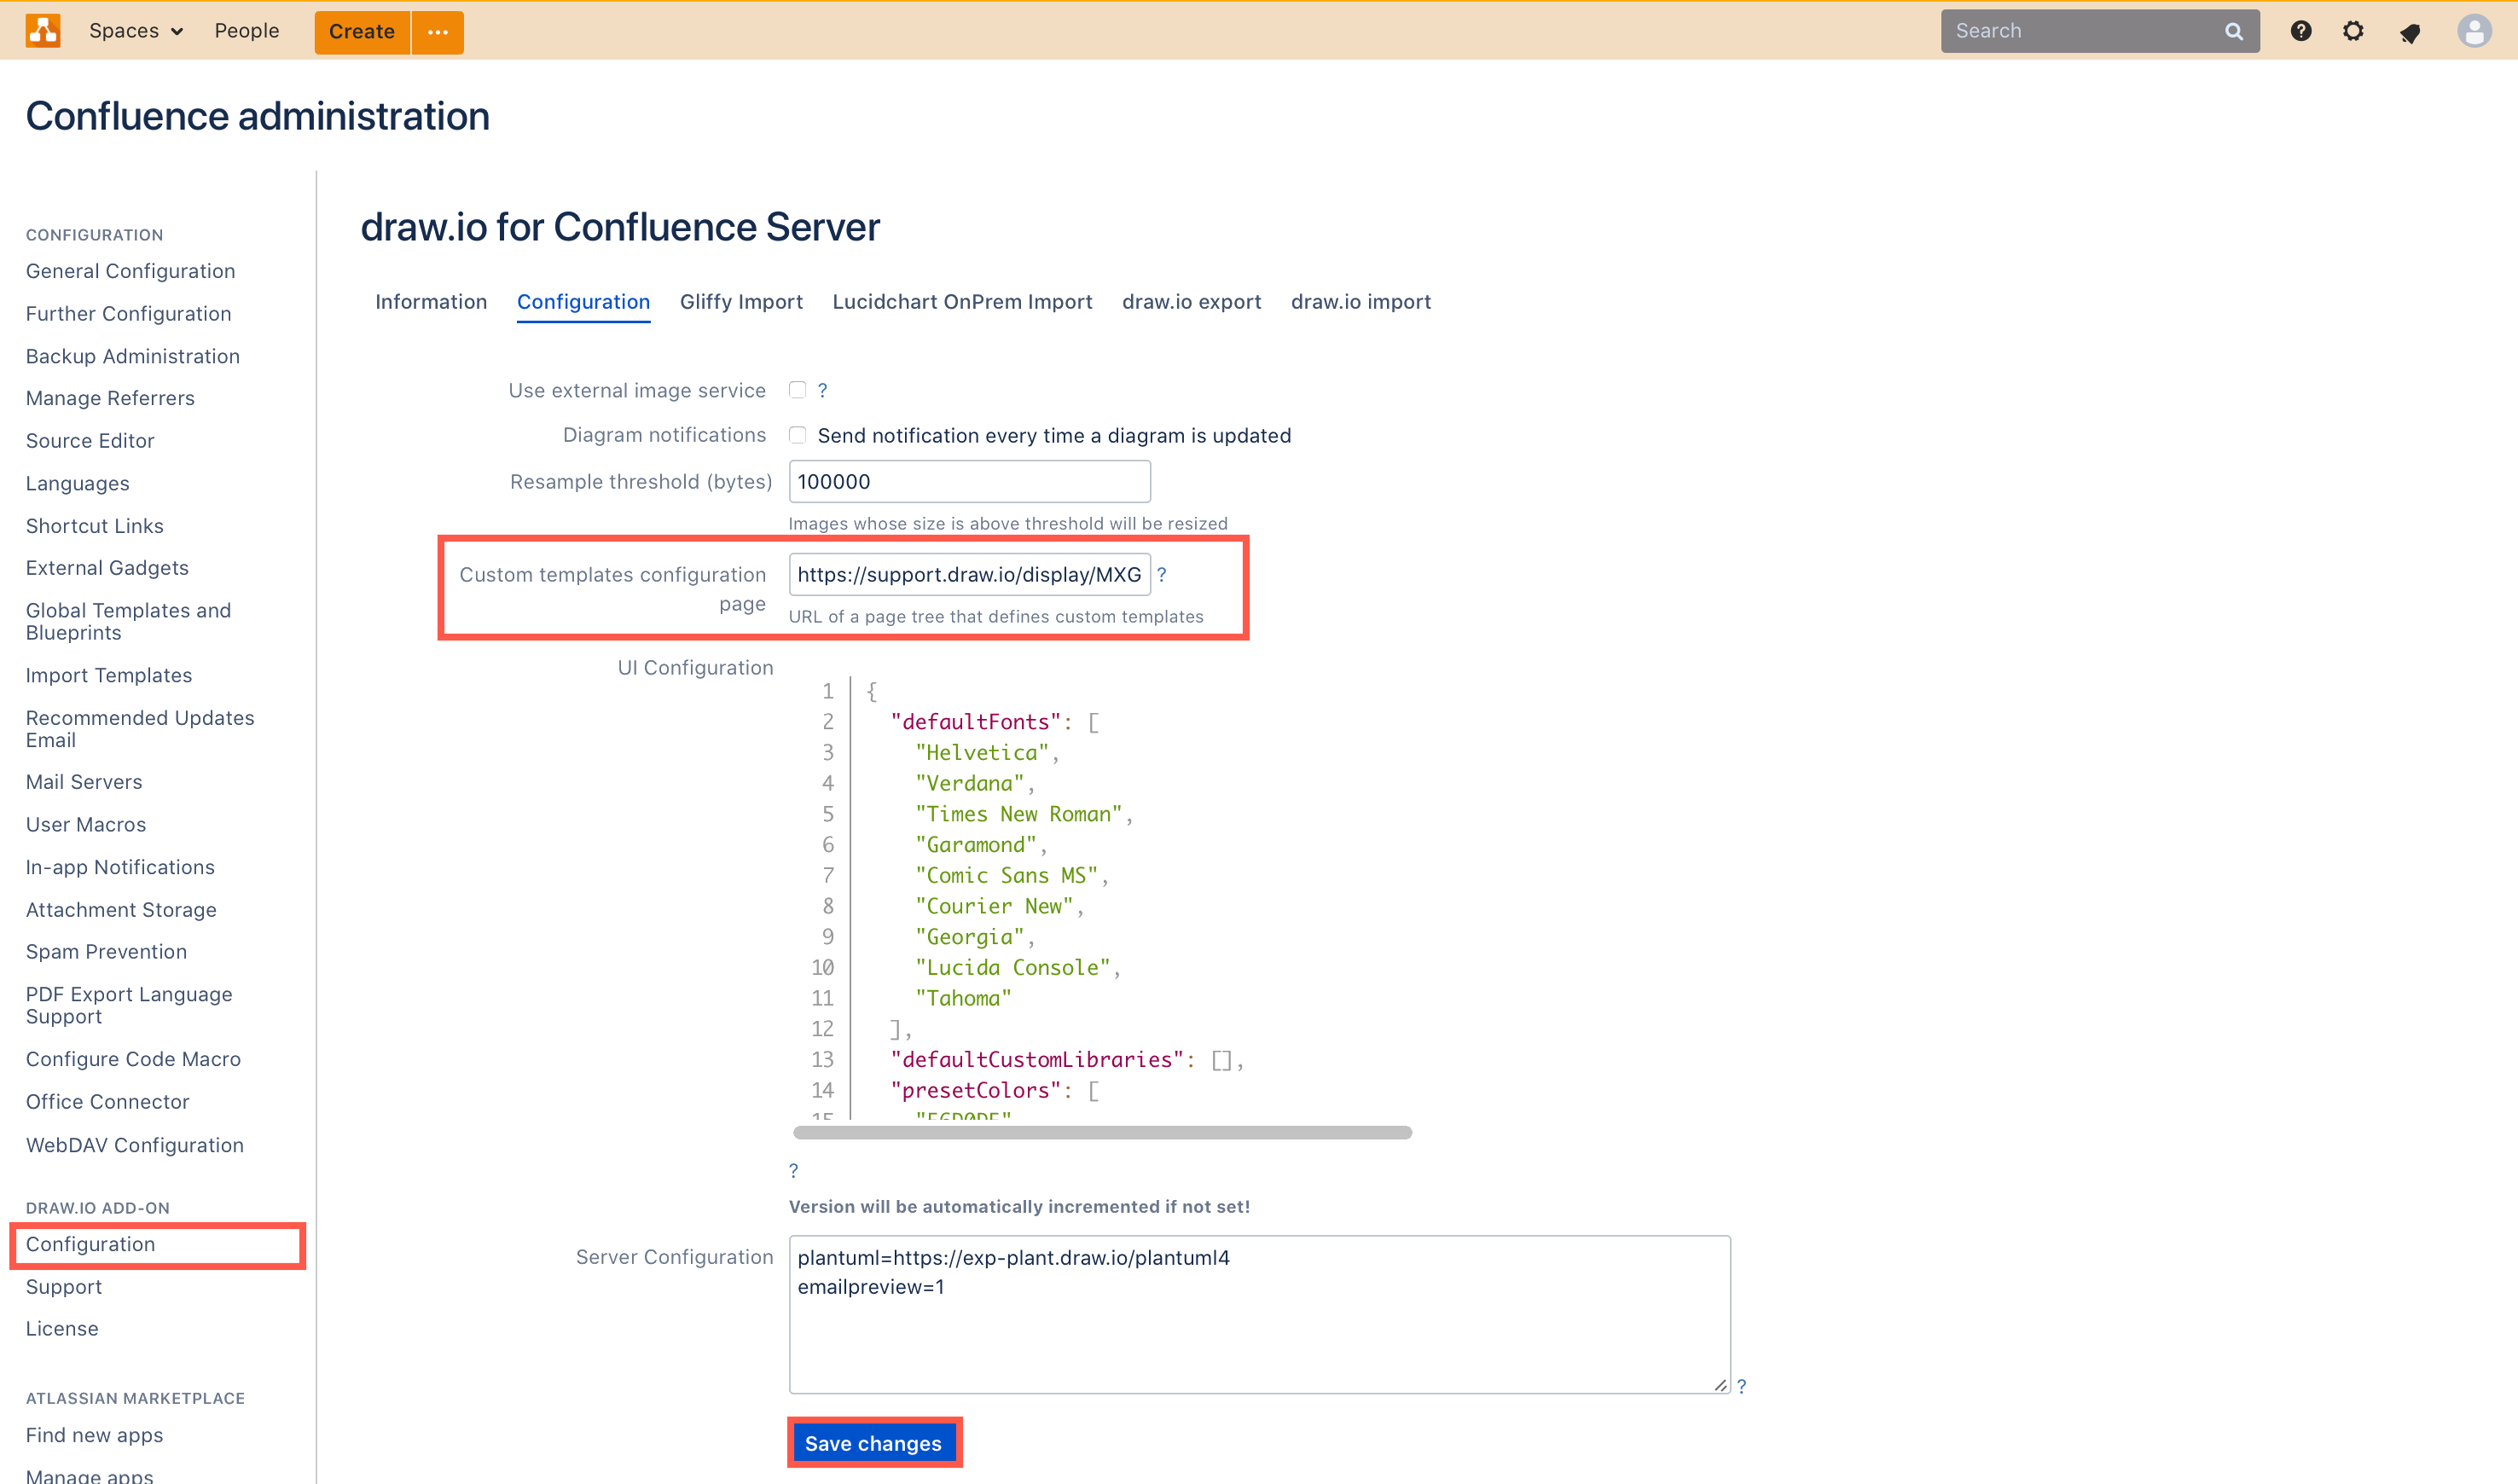 Add the custom templates parent page's URL to the draw.io configuration in the Confluence administration